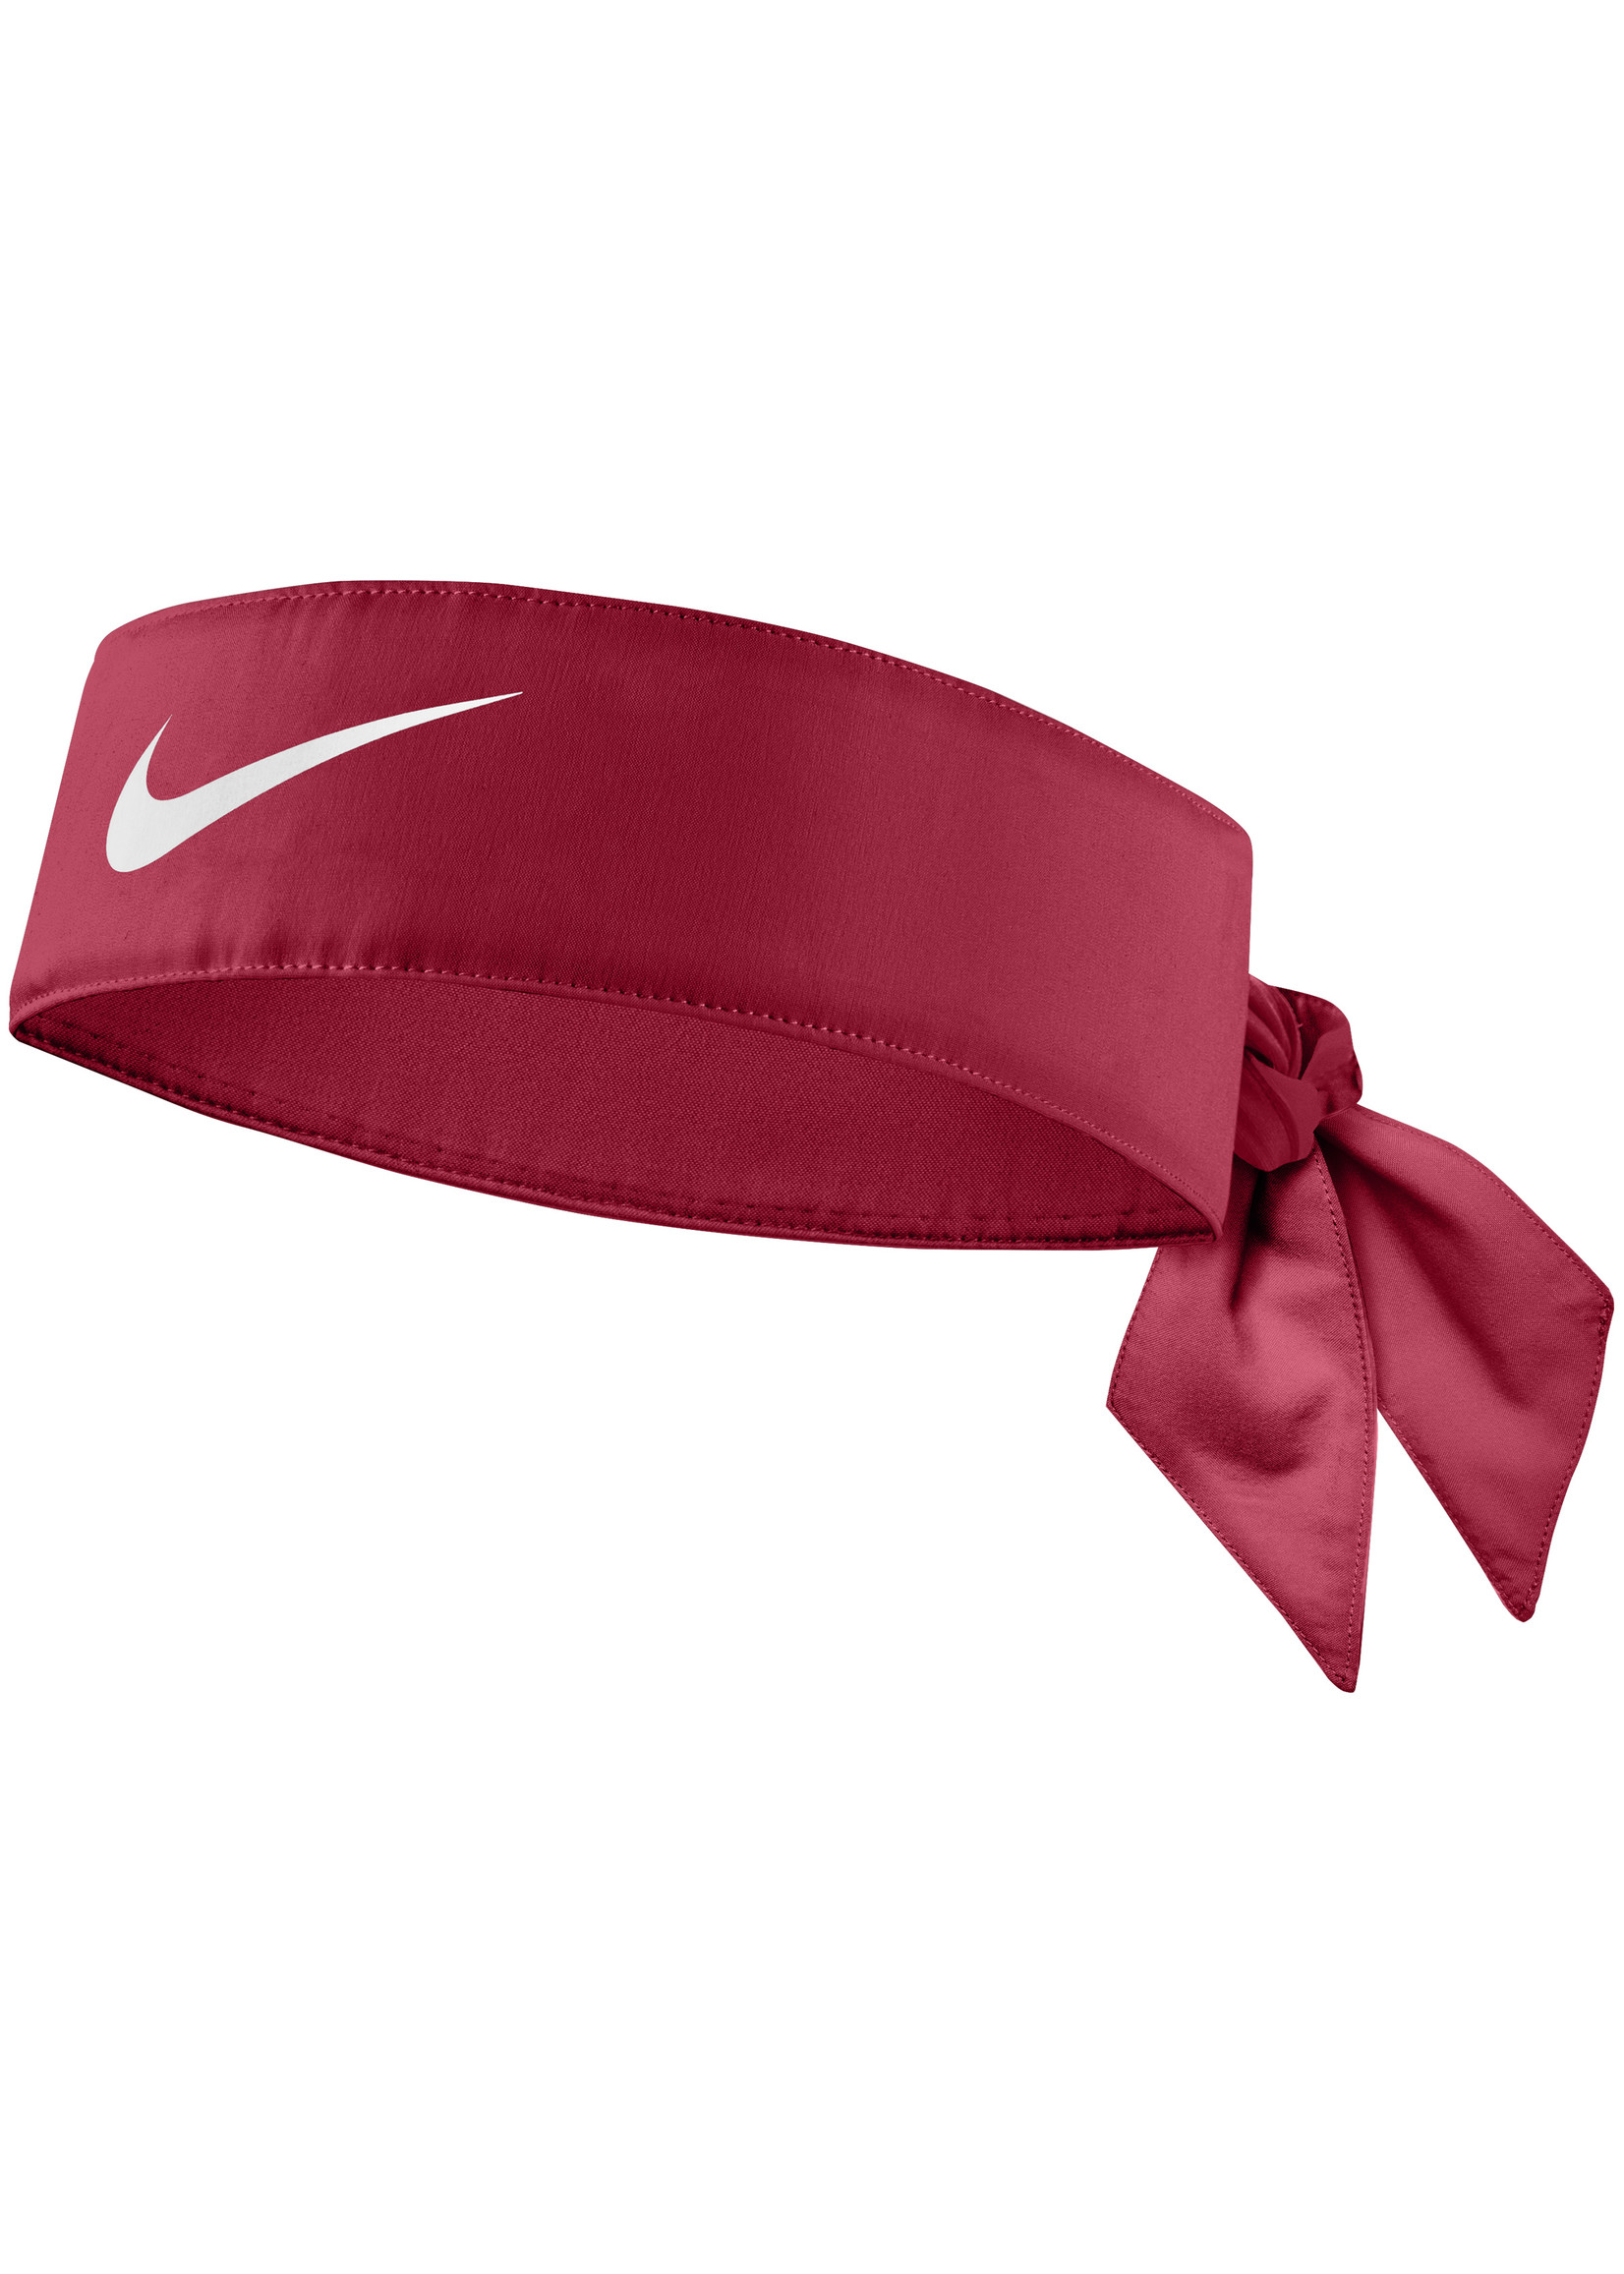 Nike Dri-Fit Head Tie Youth Red/White